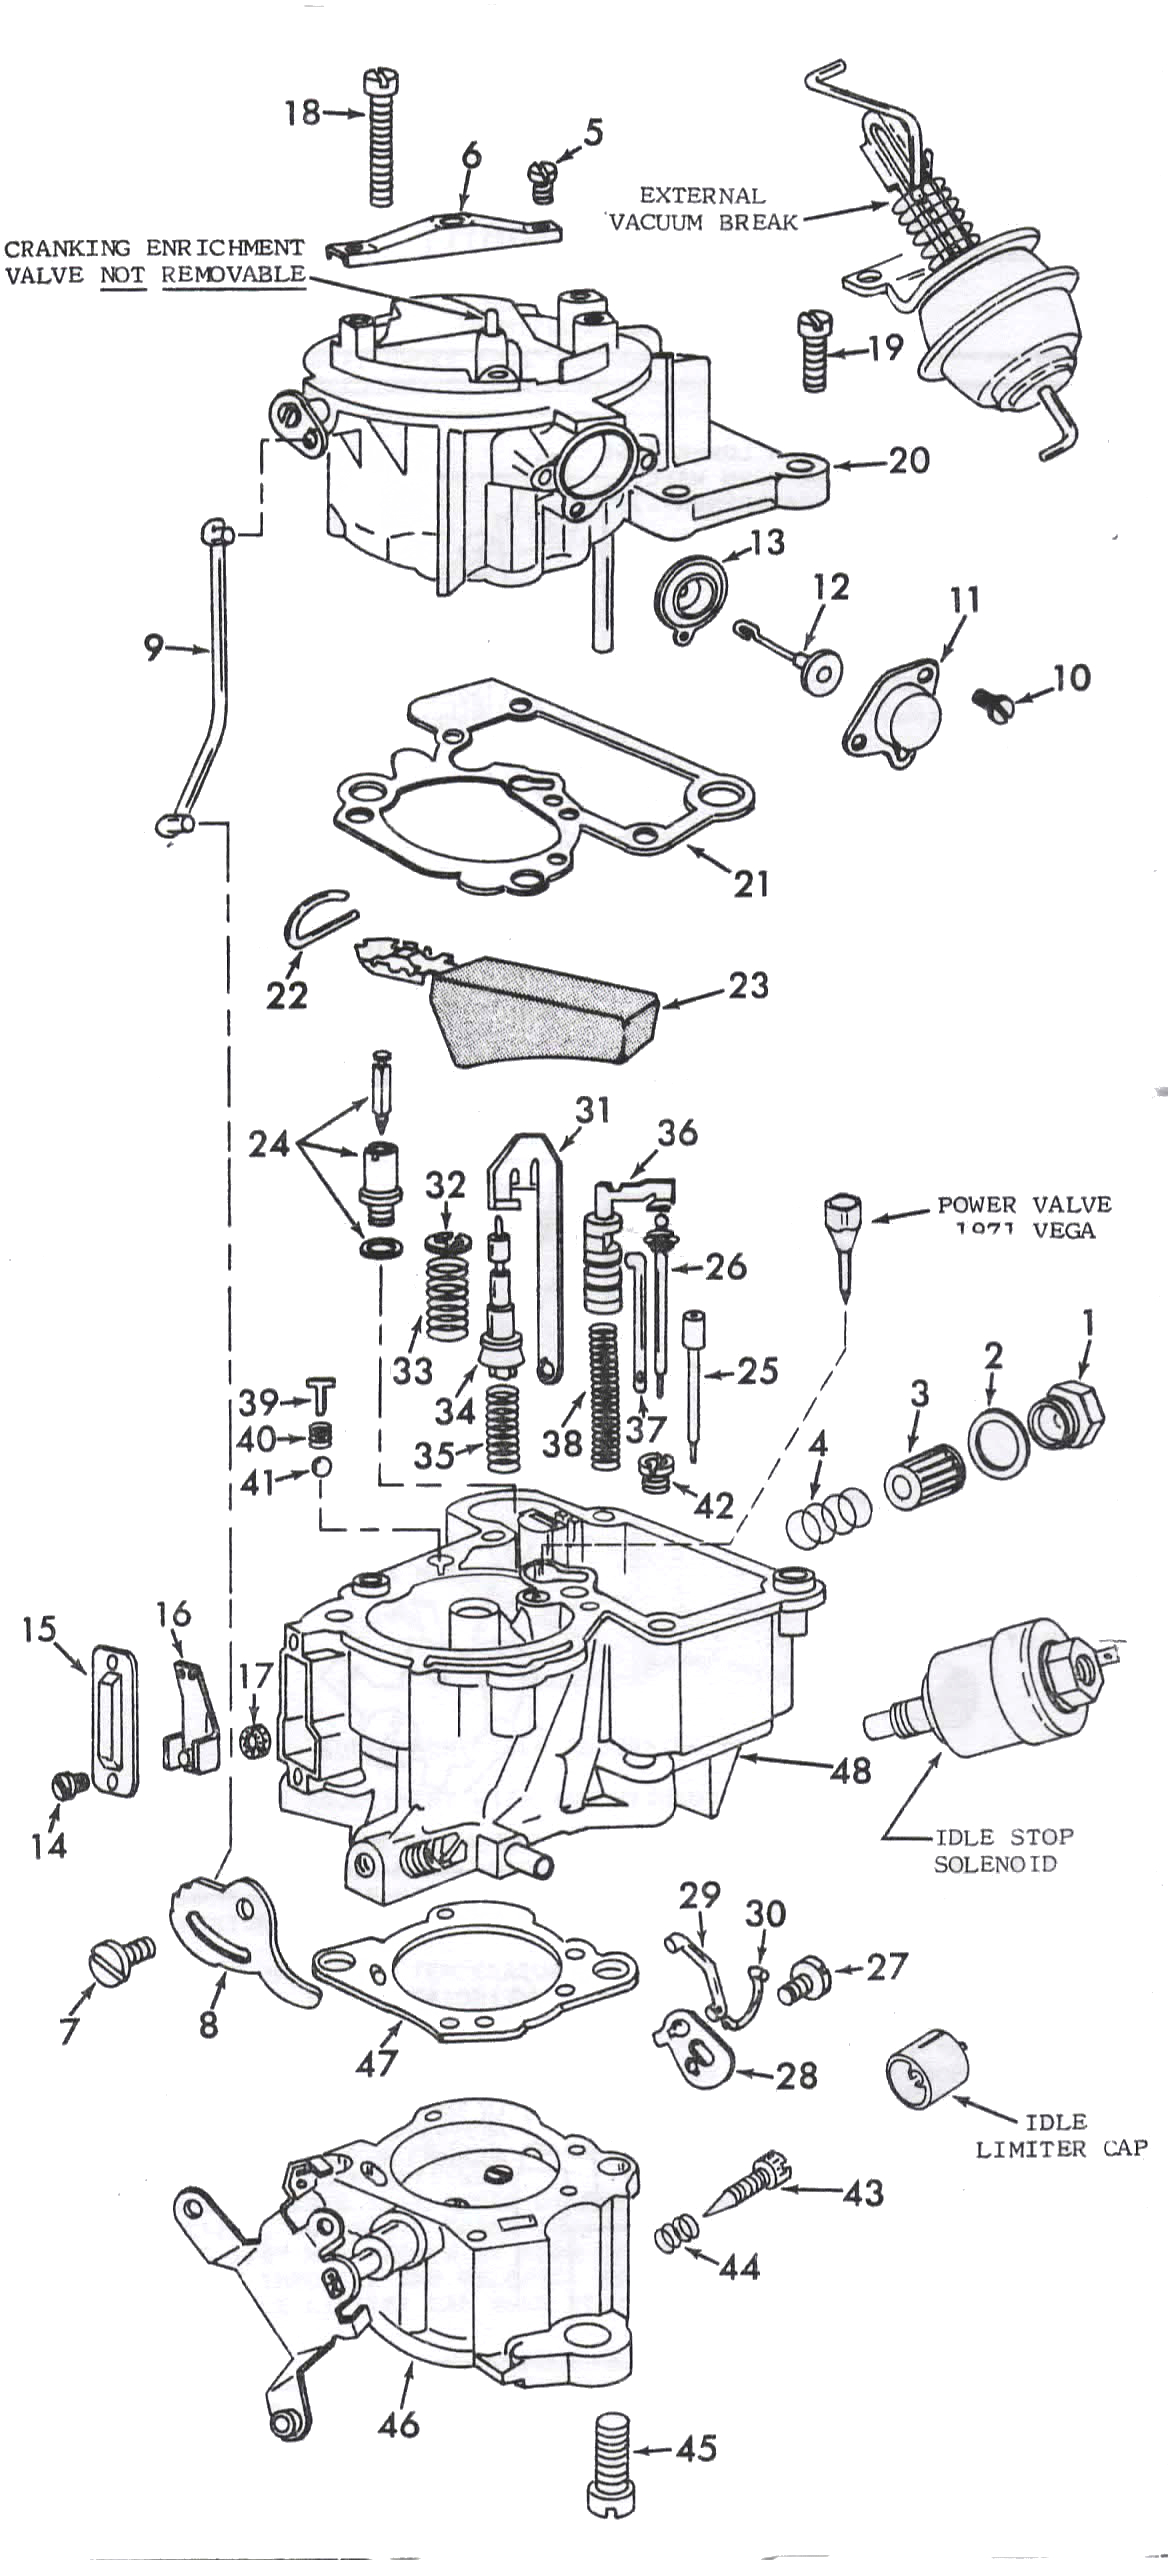 rochester monojet carburetor diagram